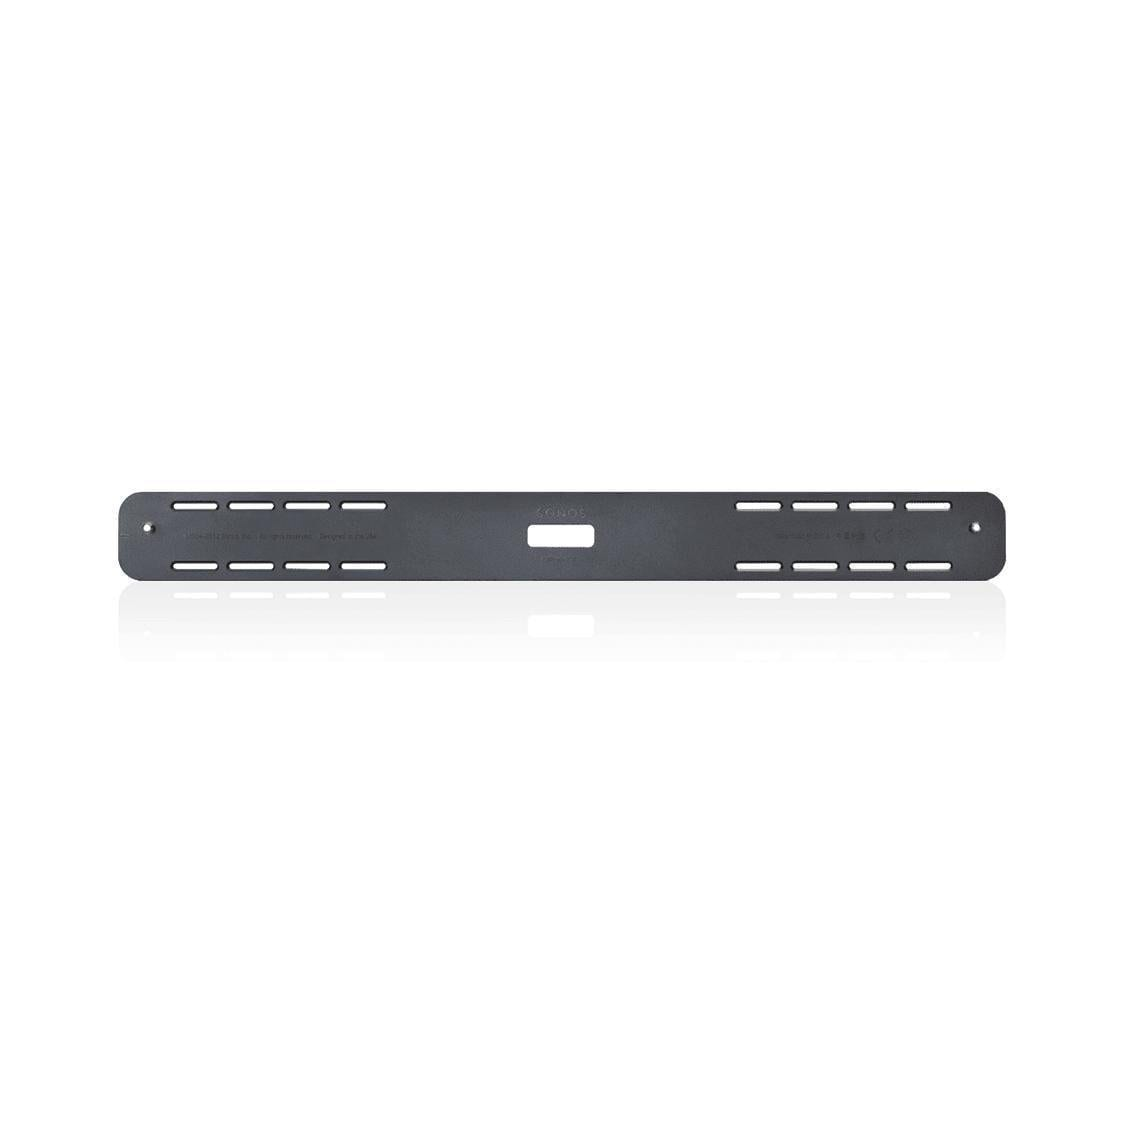 Sonos Playbar Wall Mount Kit / Neighborhood Goods